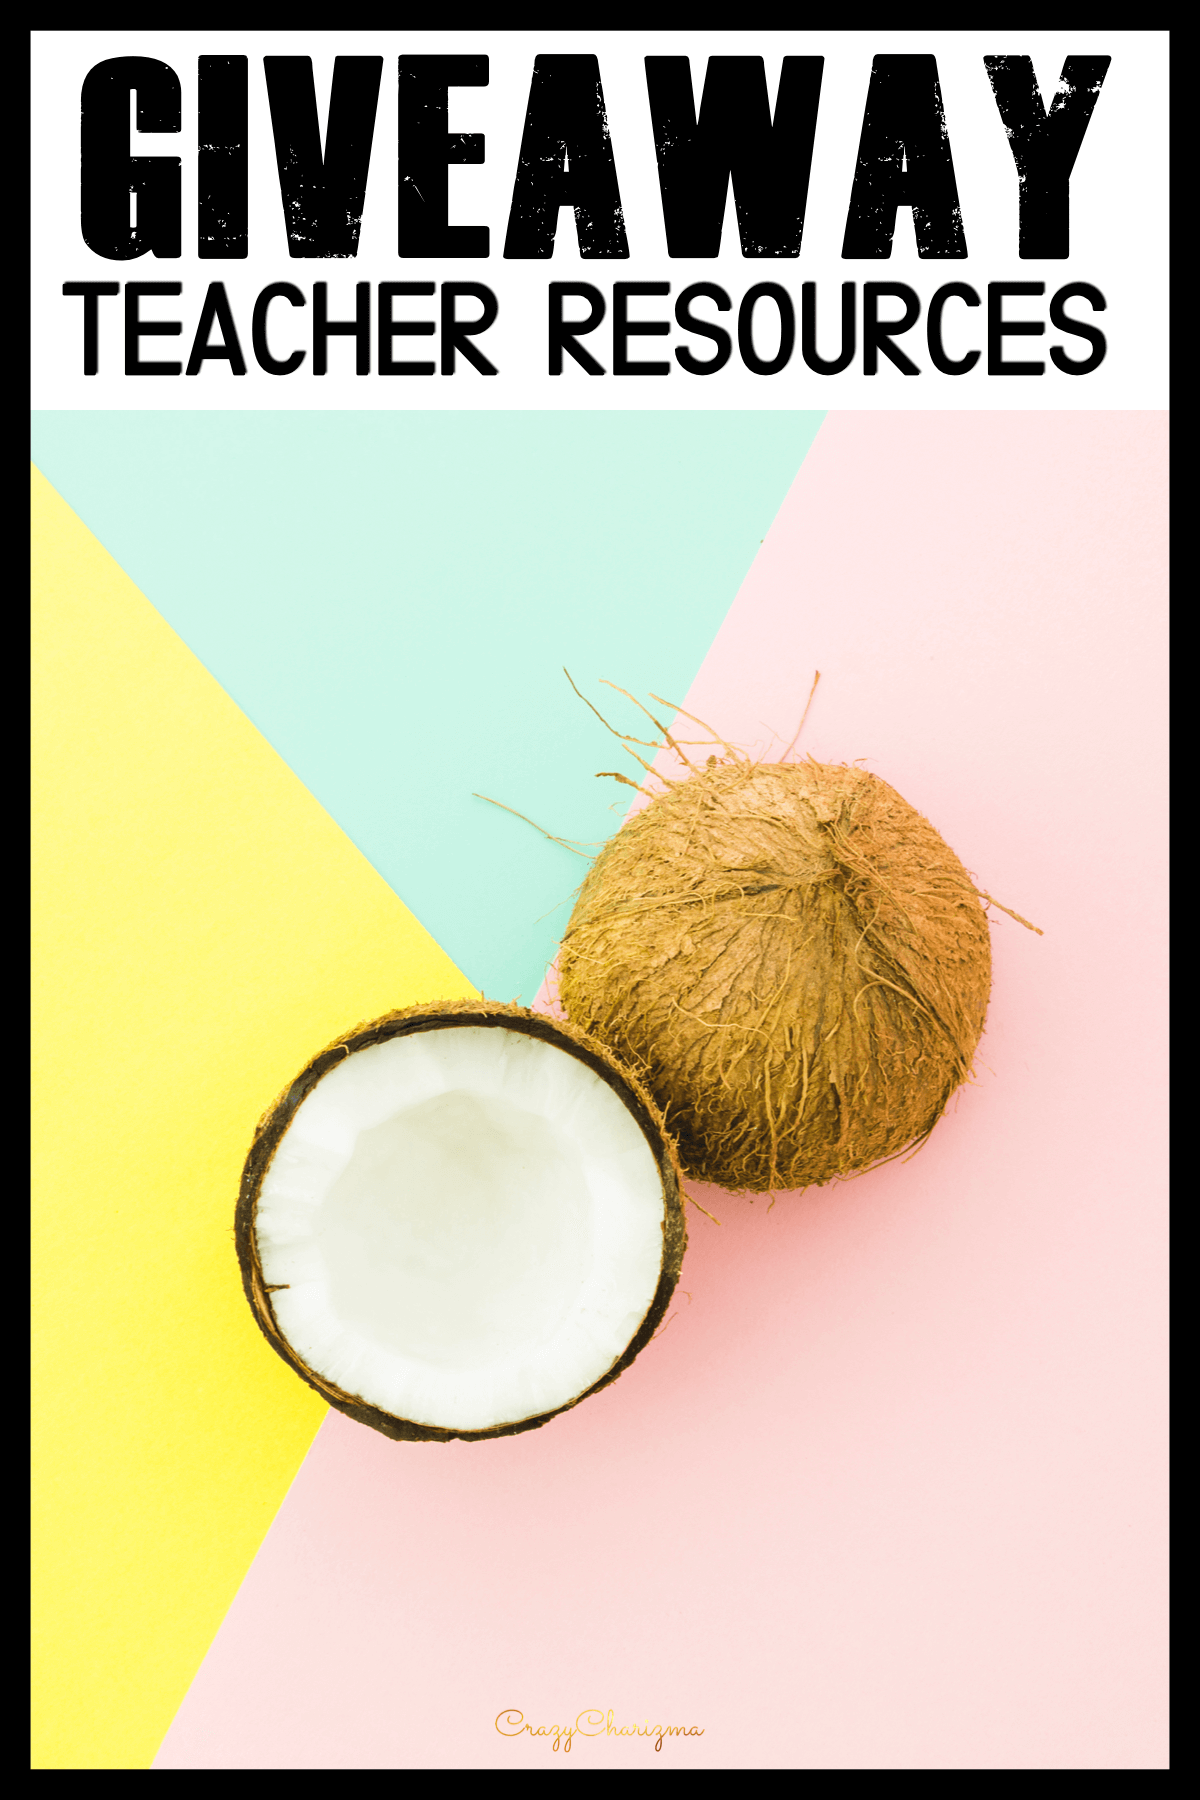 Would you love to try engaging and unique teacher resources? Win them! Google Classroom games, sight words printables, writing prompts for teens, ESL activities. These are the sets you could win and try in your classroom!